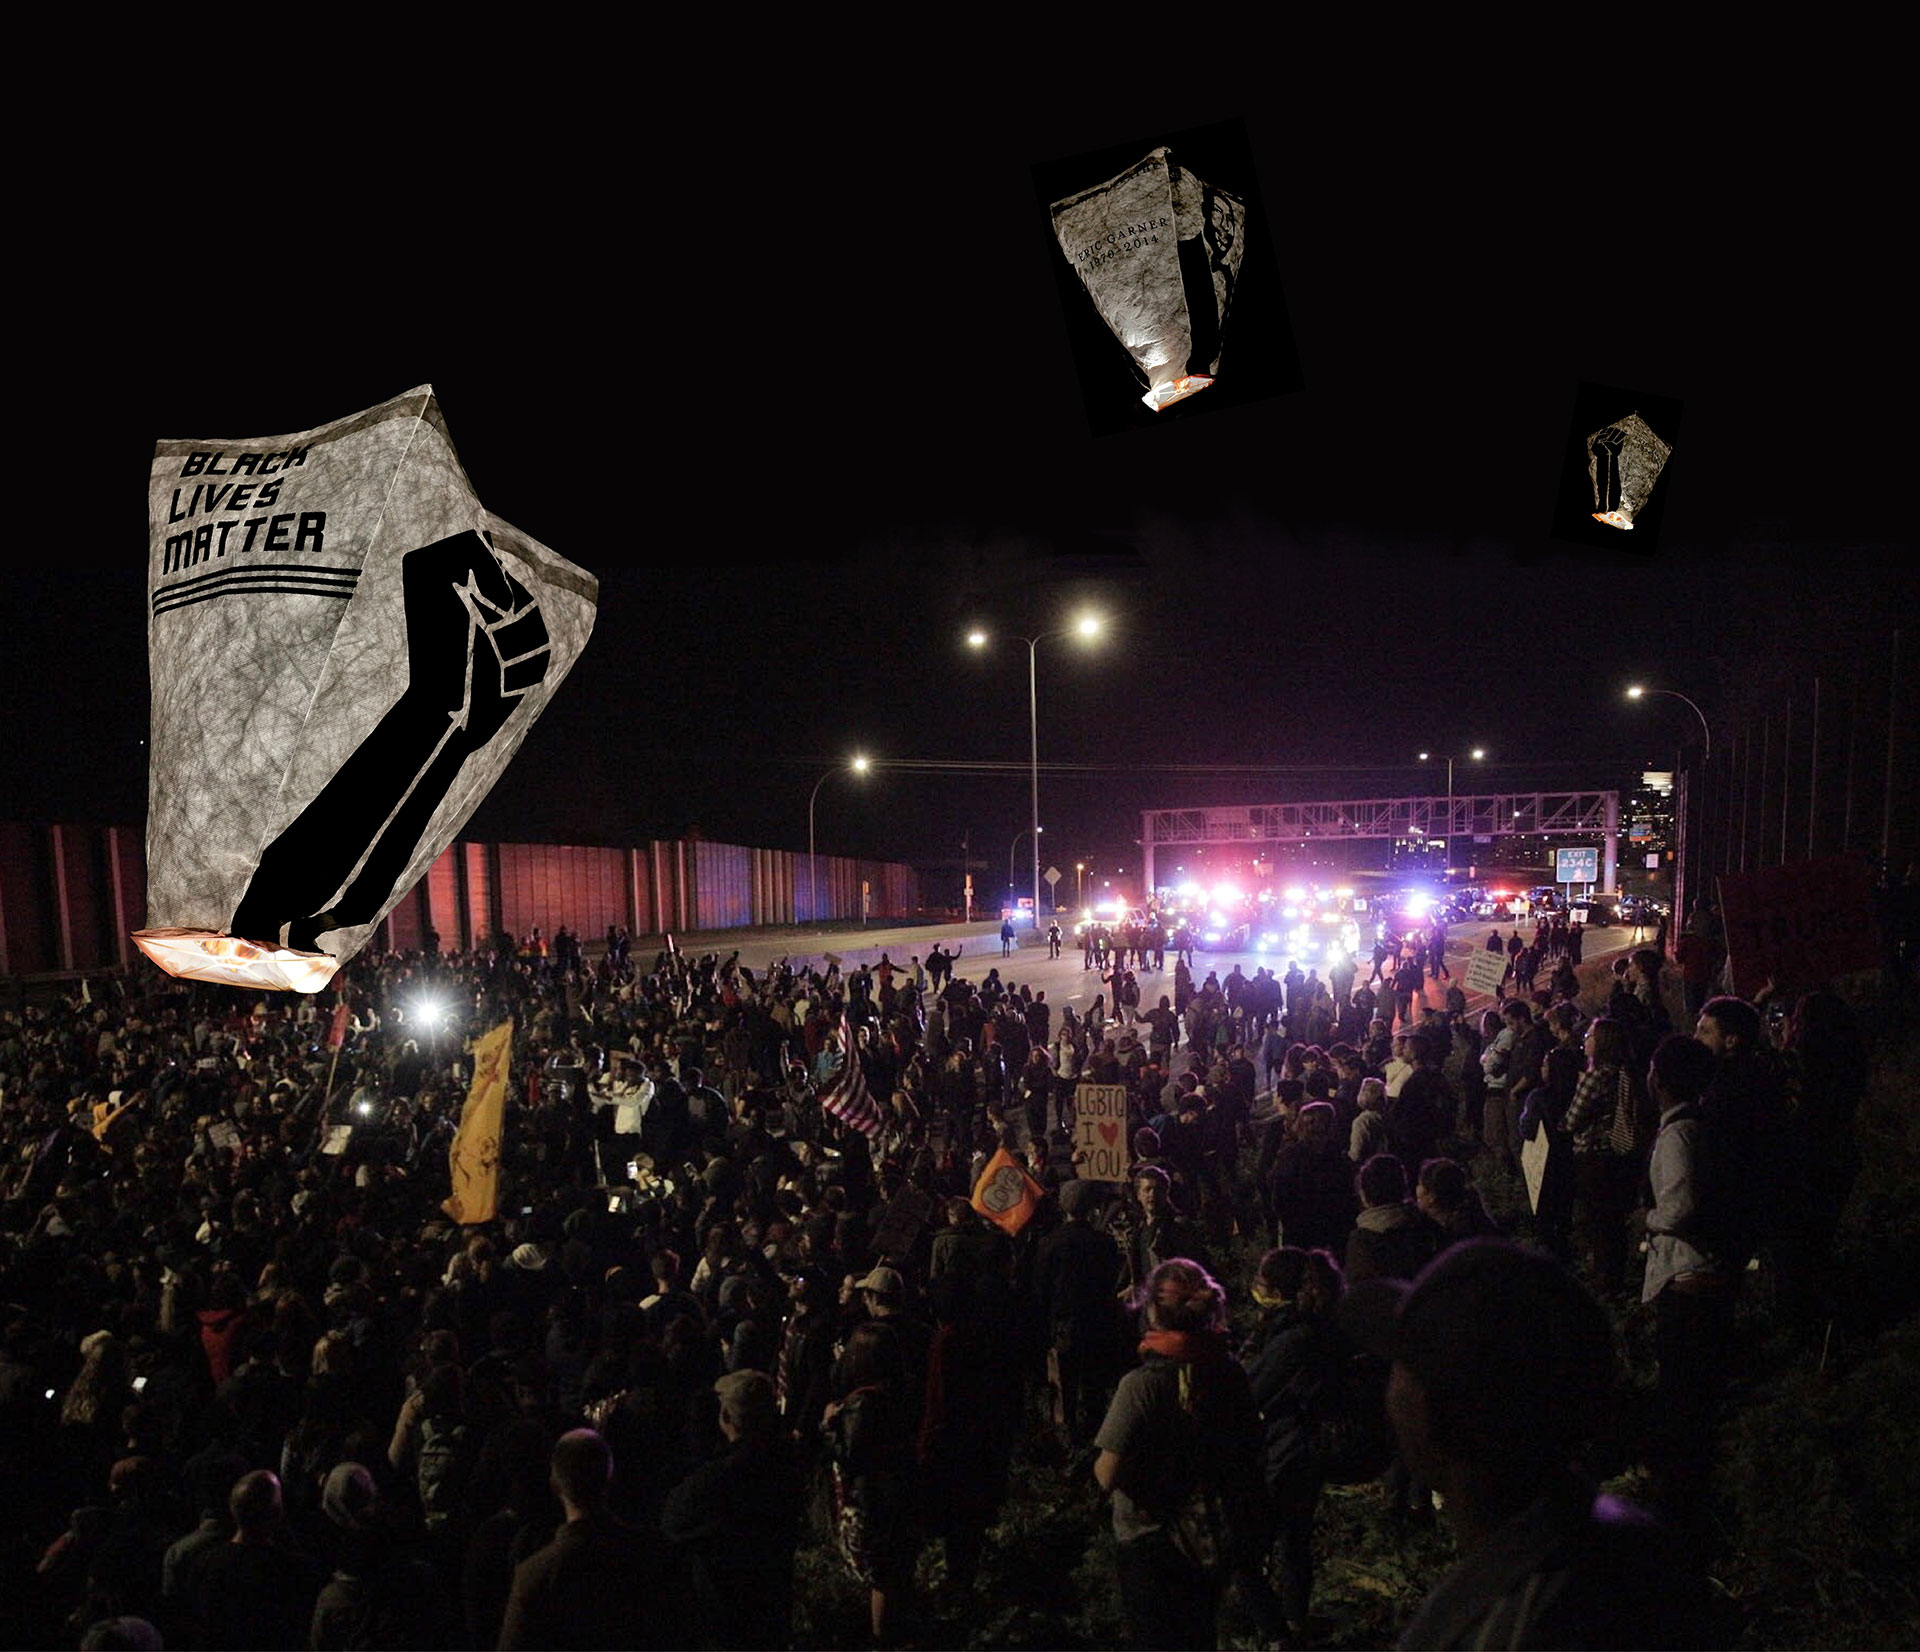 The Black Lives Matter sky lantern portrays an instance where a client employed  MOVE 's design consultancy service. BLM, embroiled in a false characterization as a violent and unruly movement, can use the evocative imagery of a lantern vigil to emphasize the origins of its purpose.